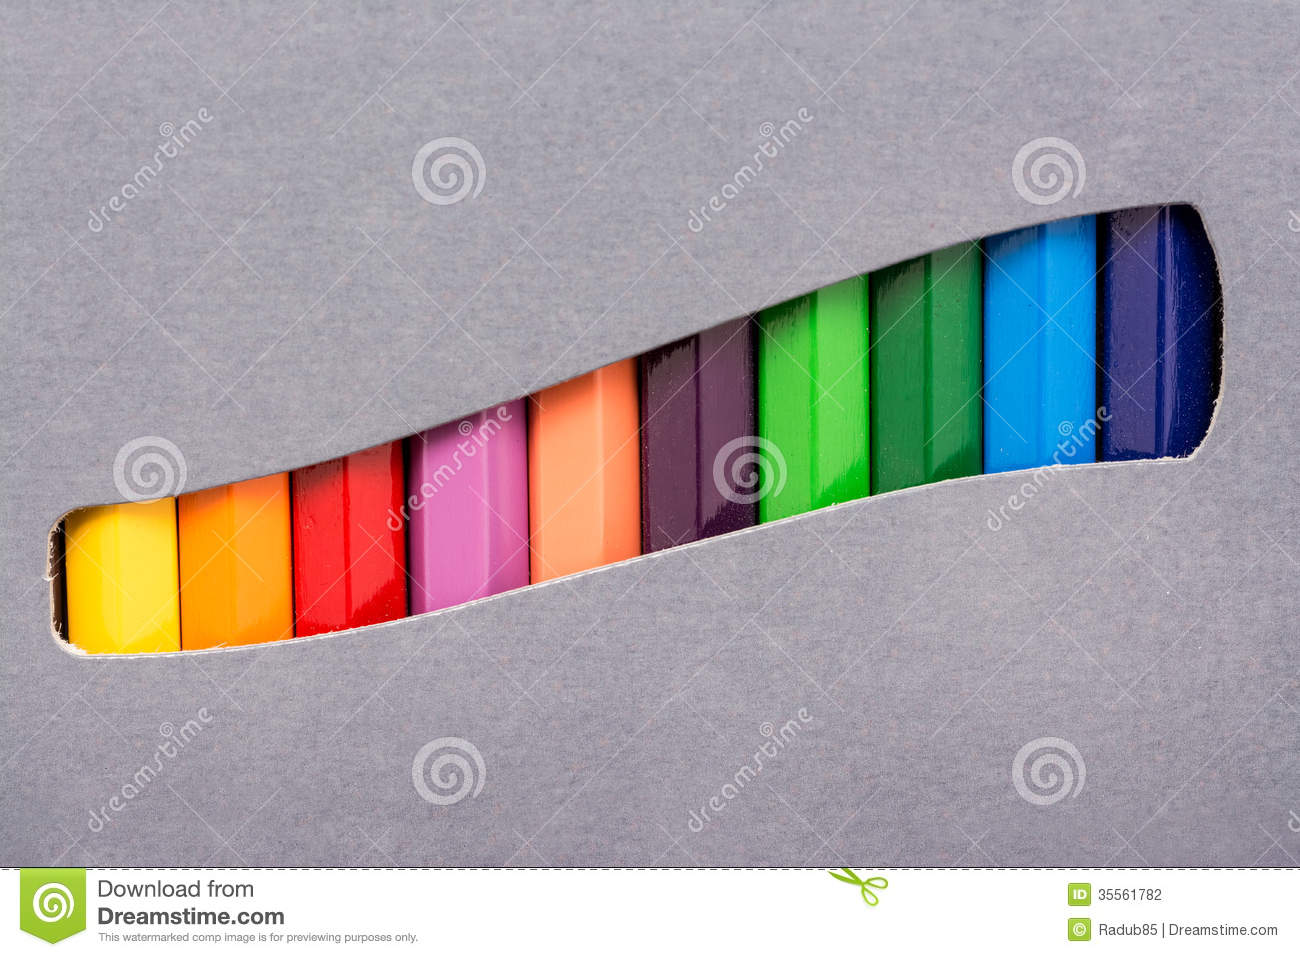 Coloring Crayons Box stock photo. Image of object, pattern - 35561782